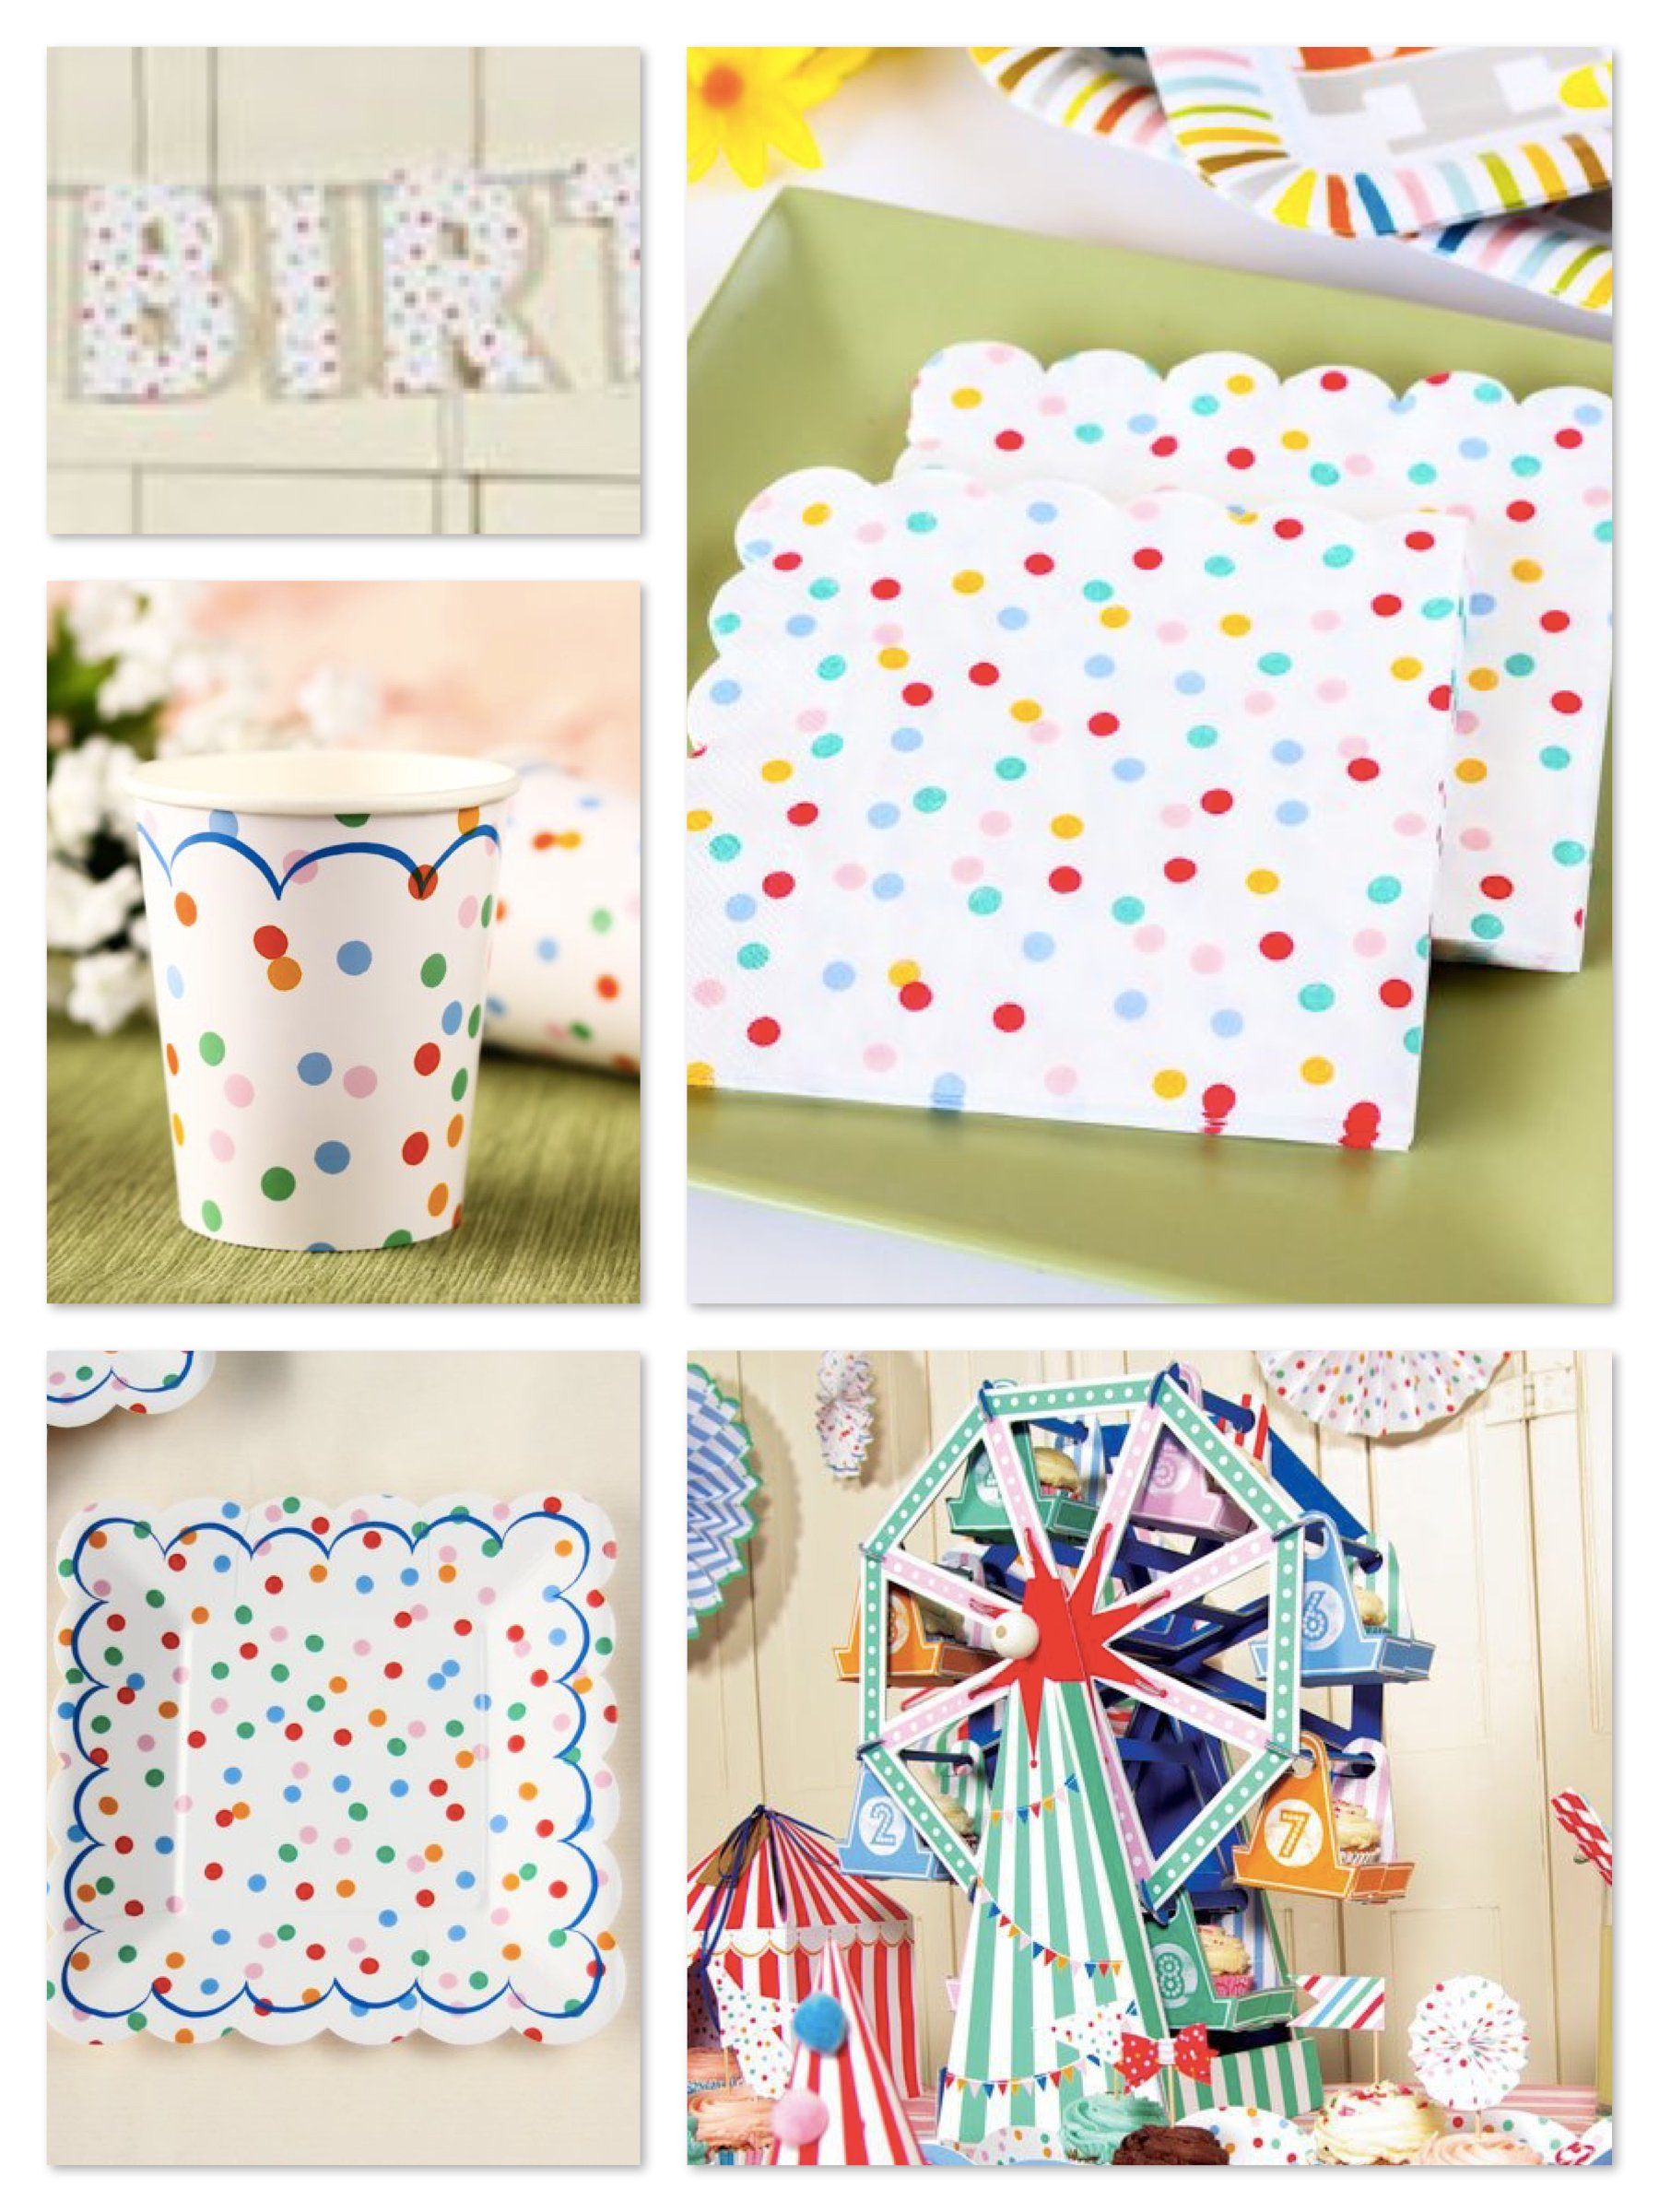 Toot Sweet Spotty Party Supplies